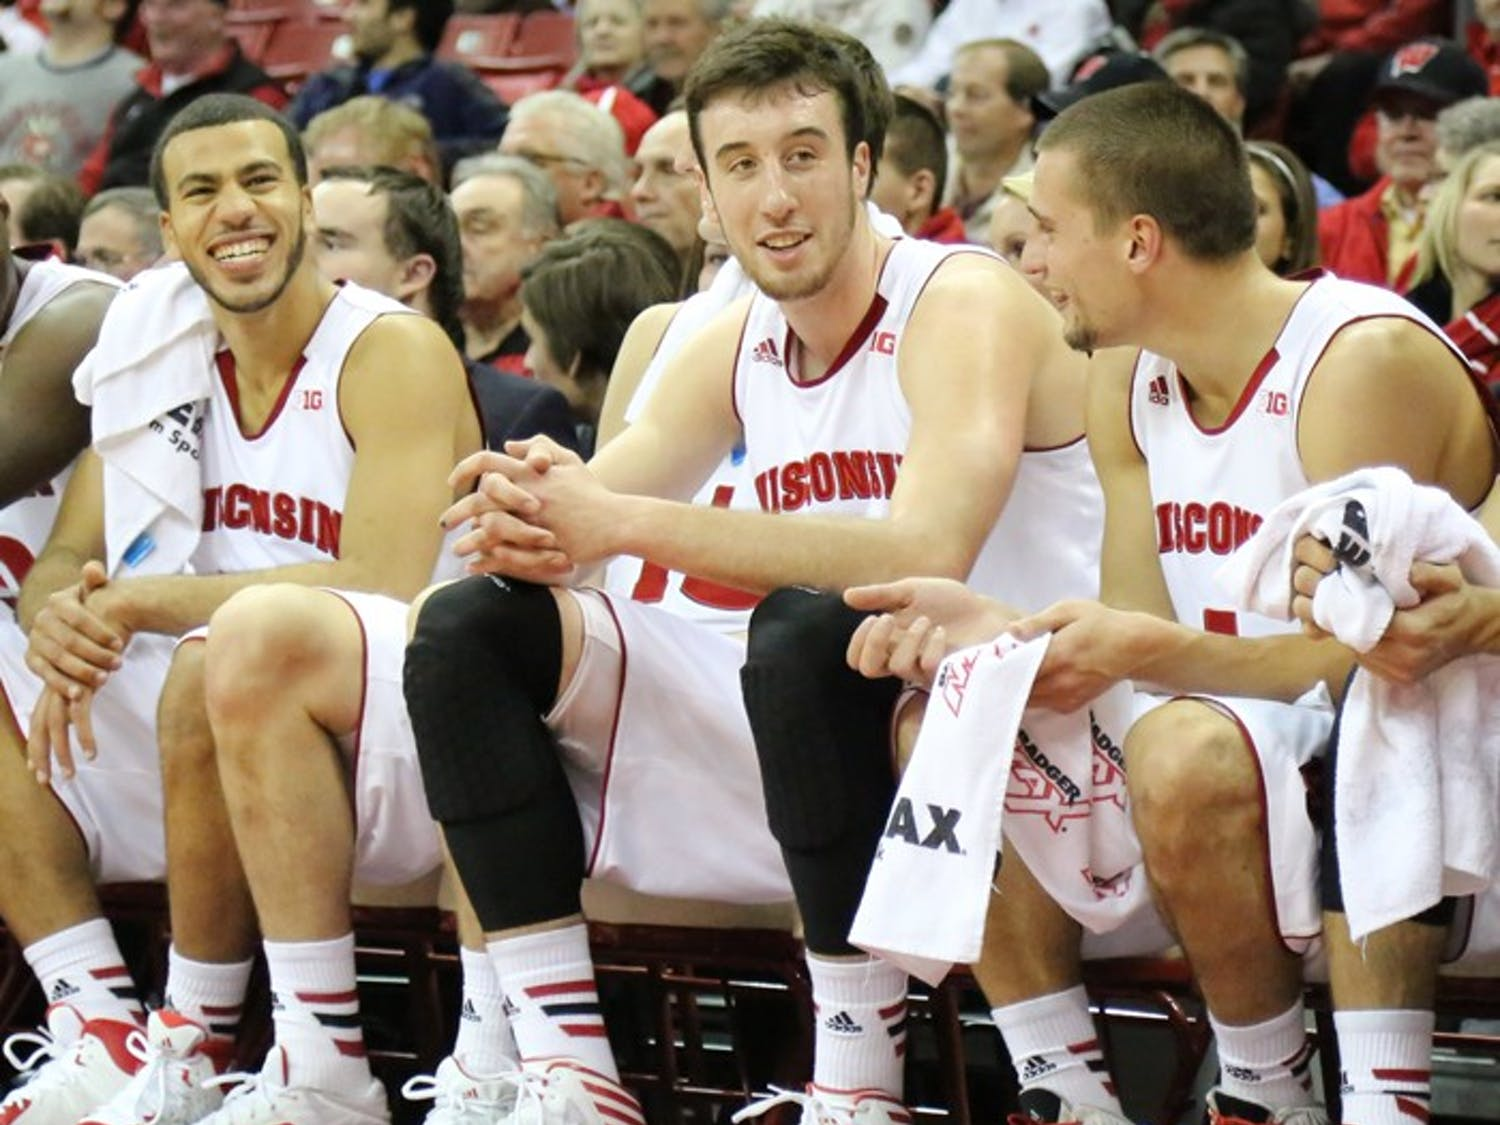 The Wisconsin Badgers defeated North Dakota 103-85. Frank Kaminsky beat a school record by scoring 43 points in a single game.